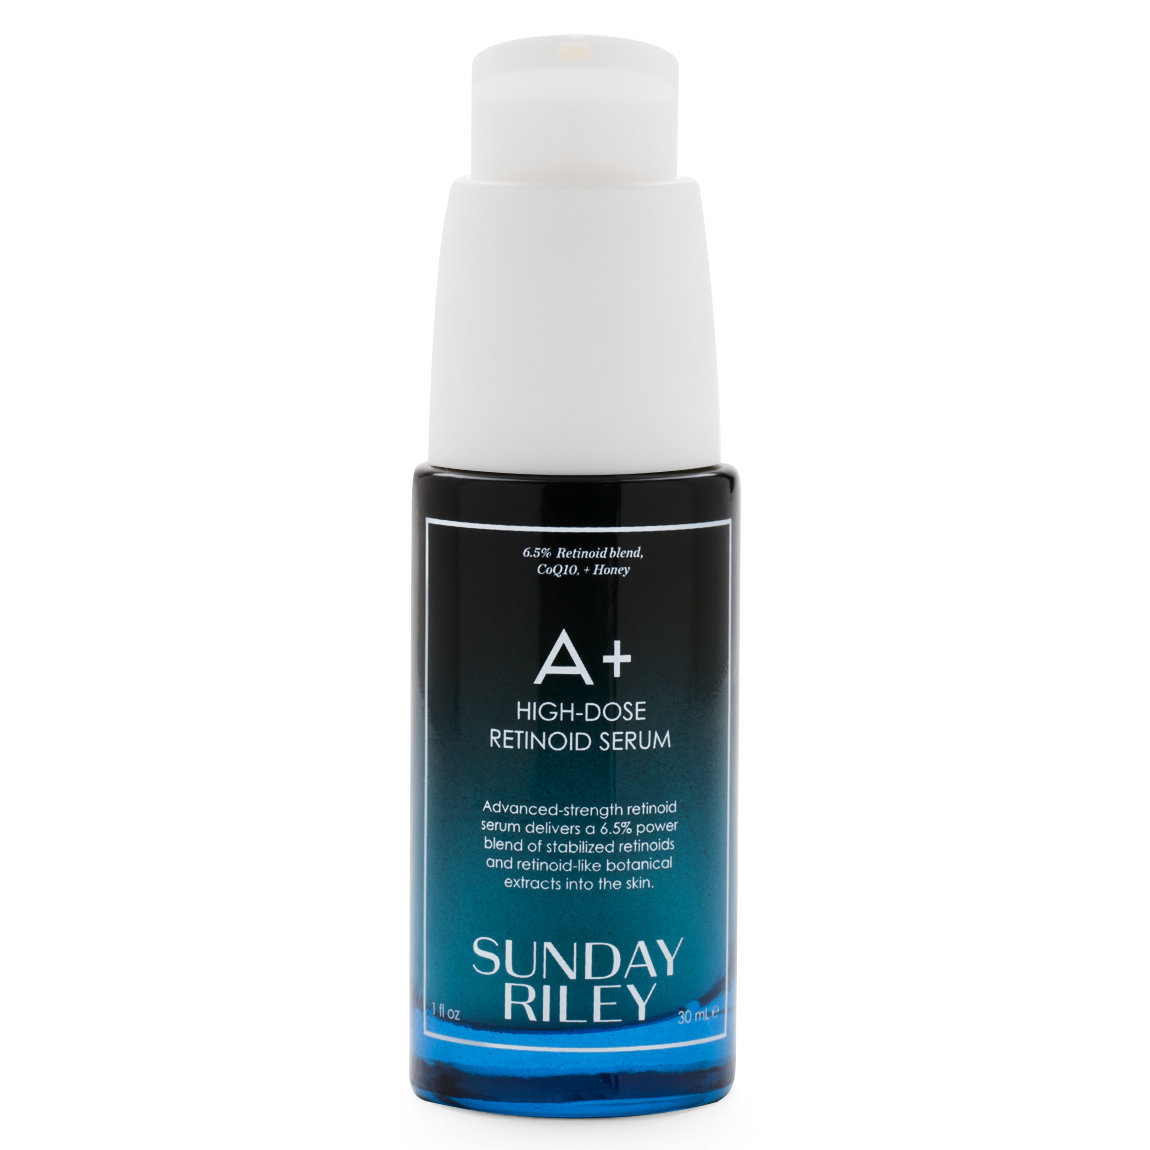 Sunday Riley A+ High Dose Retinoid Serum product smear.